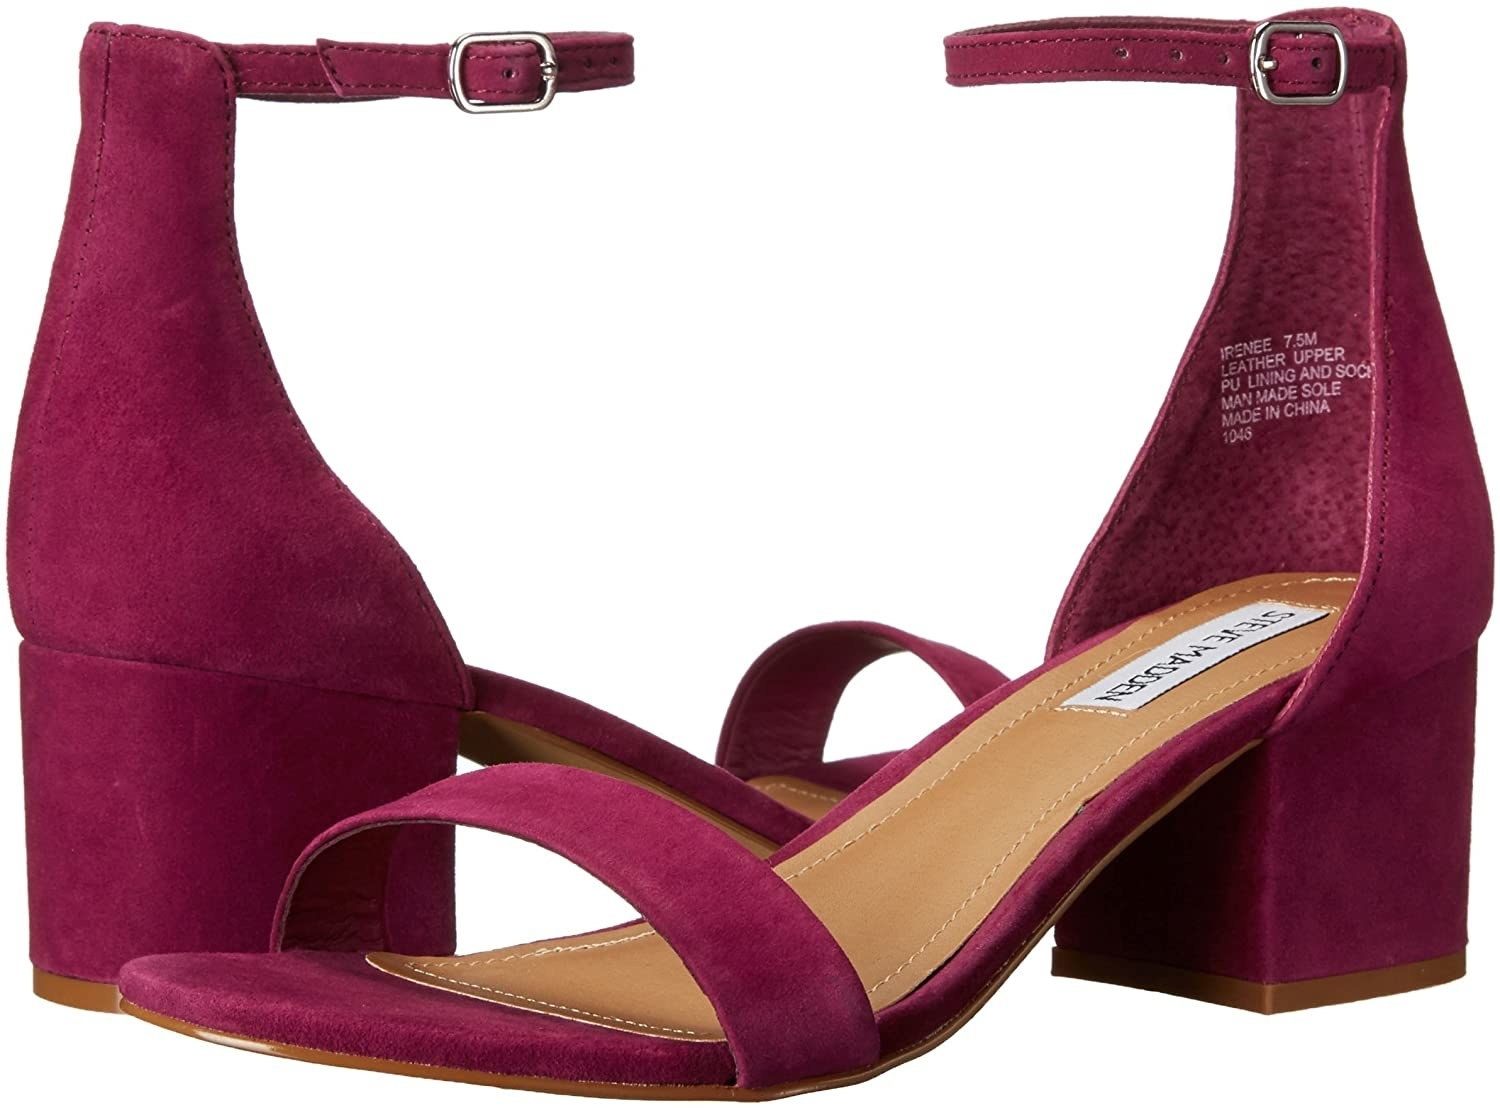 The low heeled sandals